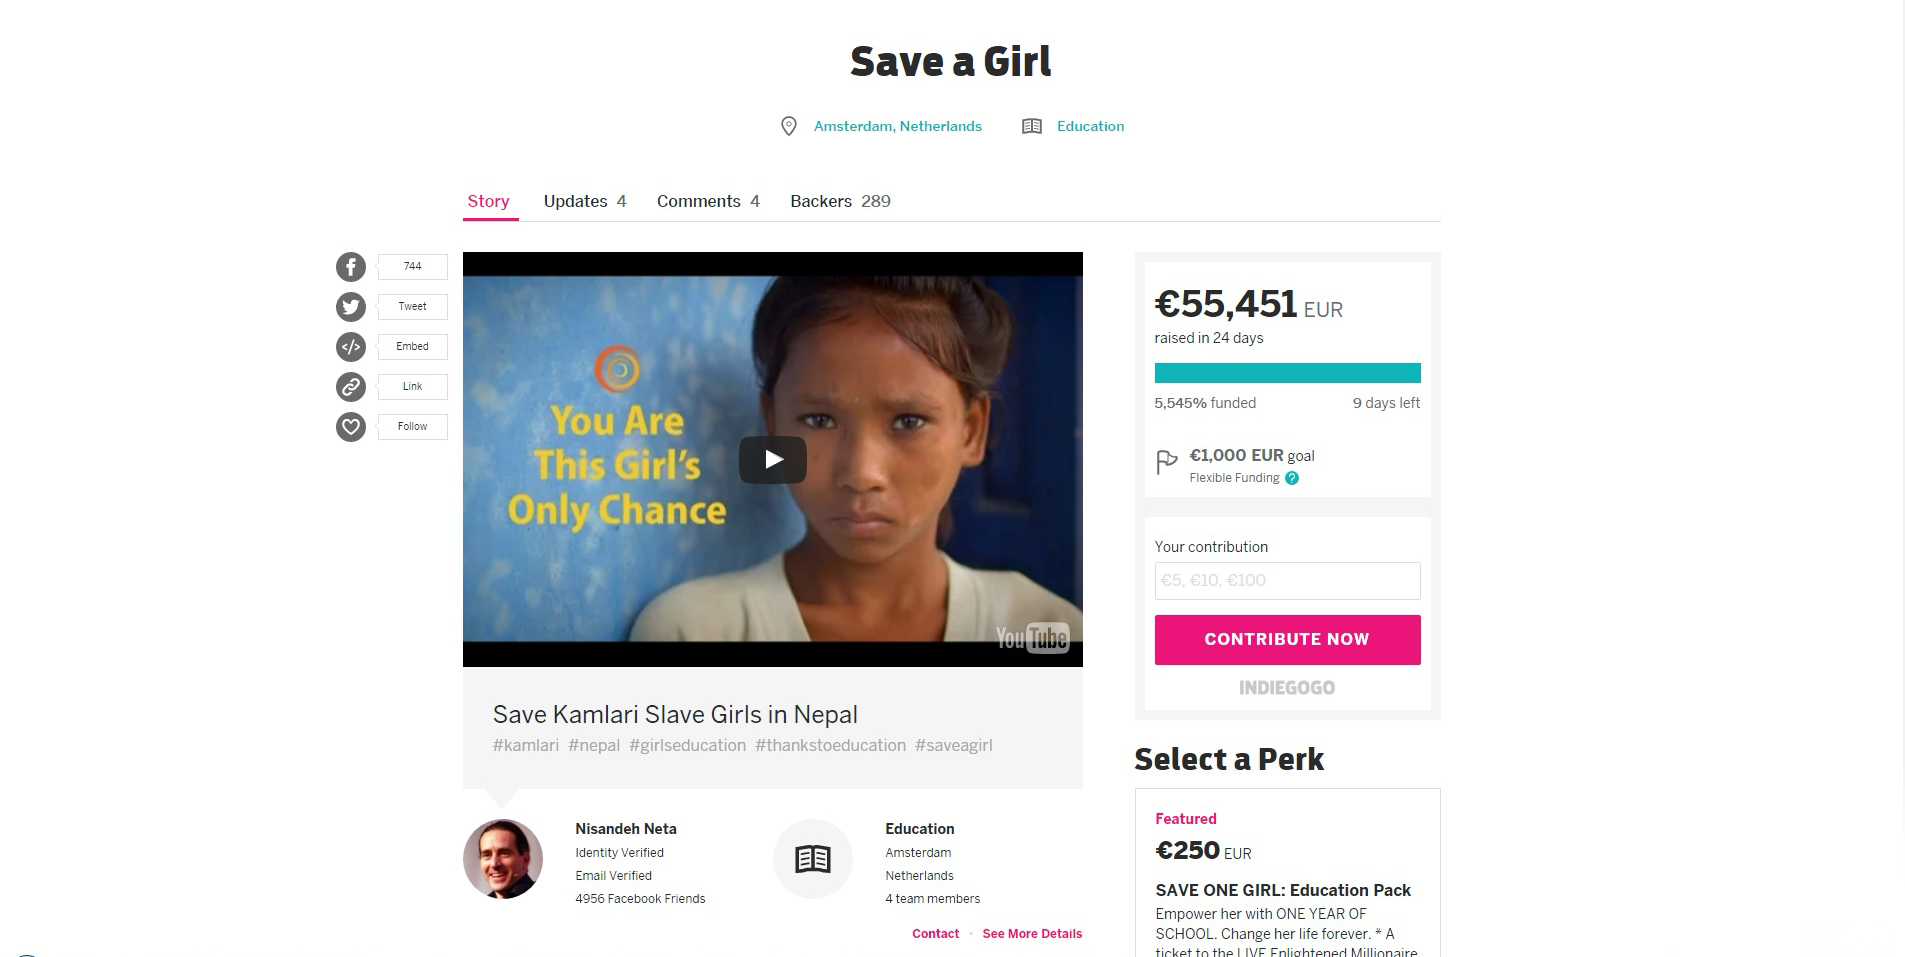 Save a girl - Indiegogo Campaign